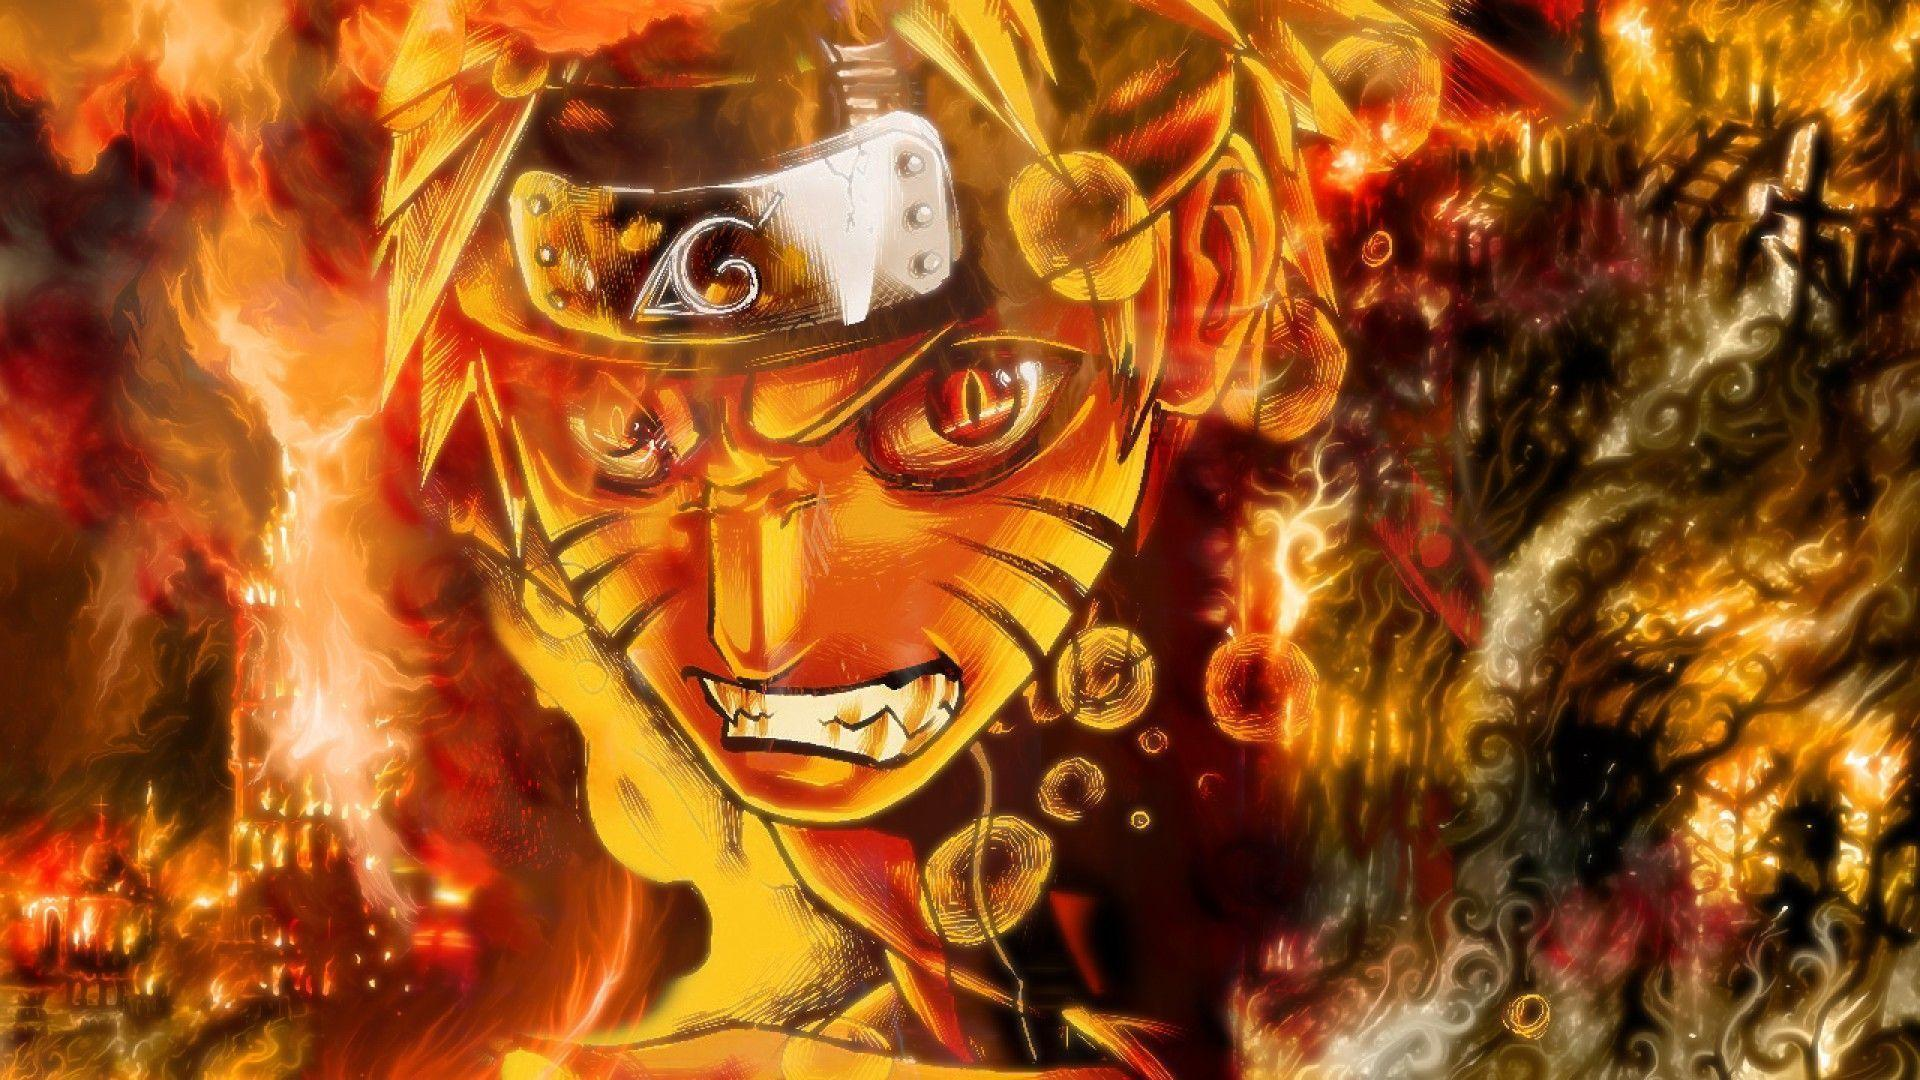 Naruto 1920x1080 Wallpapers - Wallpaper Cave